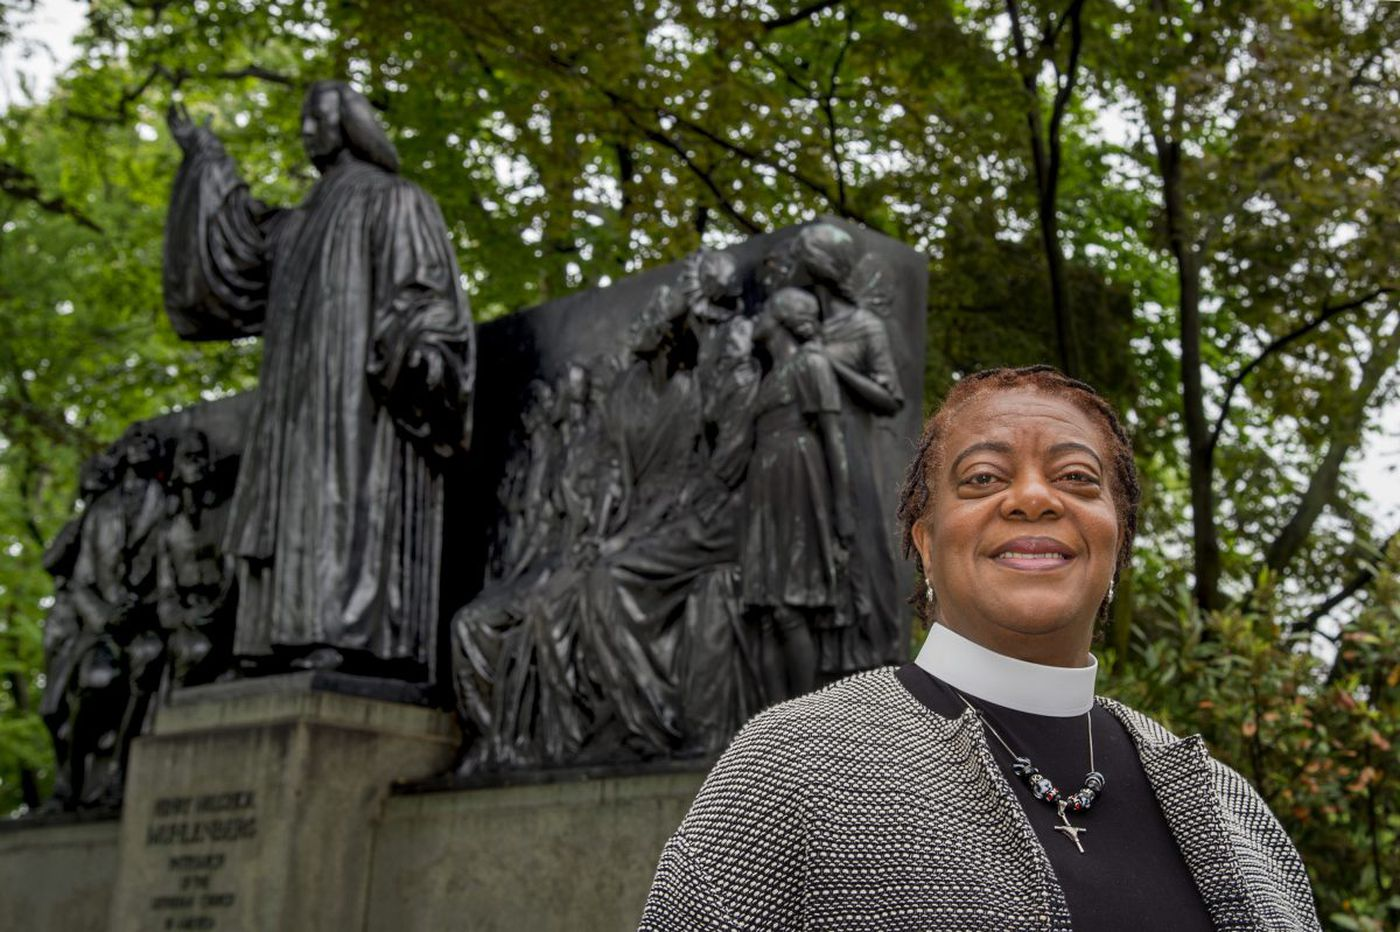 Lutheran minister from Philly overcame misgivings to make history as first black female bishop